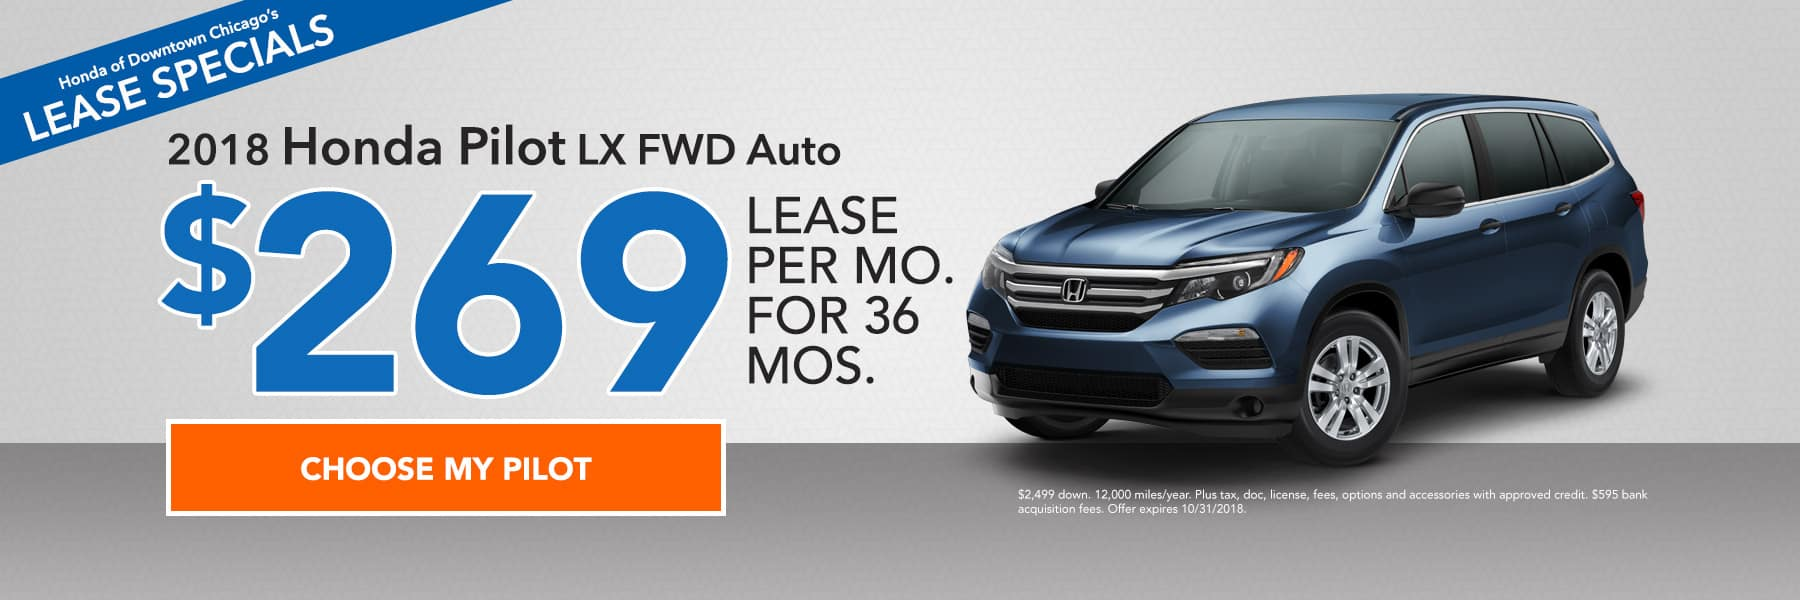 Lease specials - 2018 Honda Pilot LX FWD Auto - Lease for $269/month for 36 months - Choose my Pilot